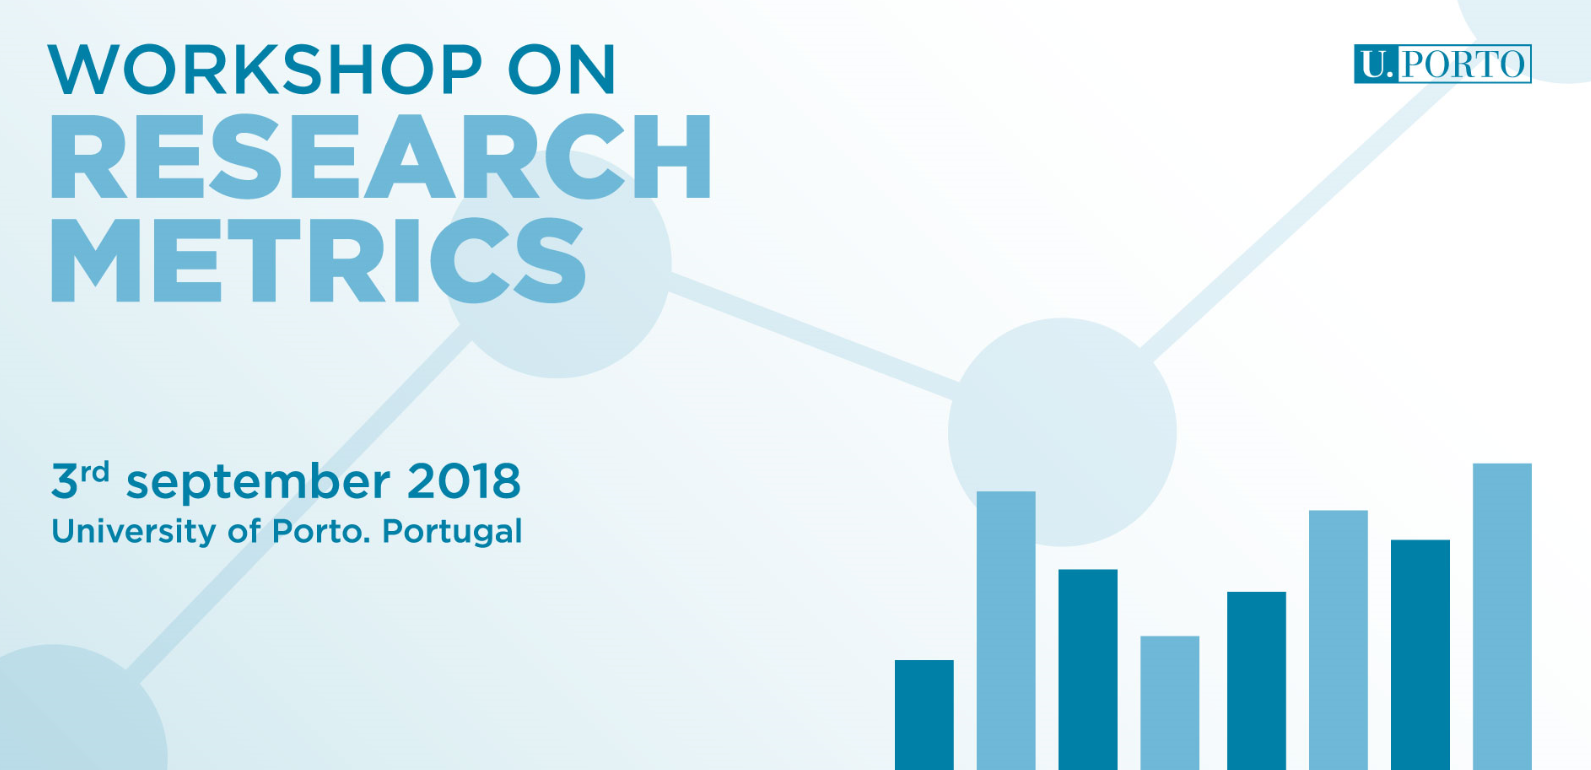 Workshop on Research Metrics